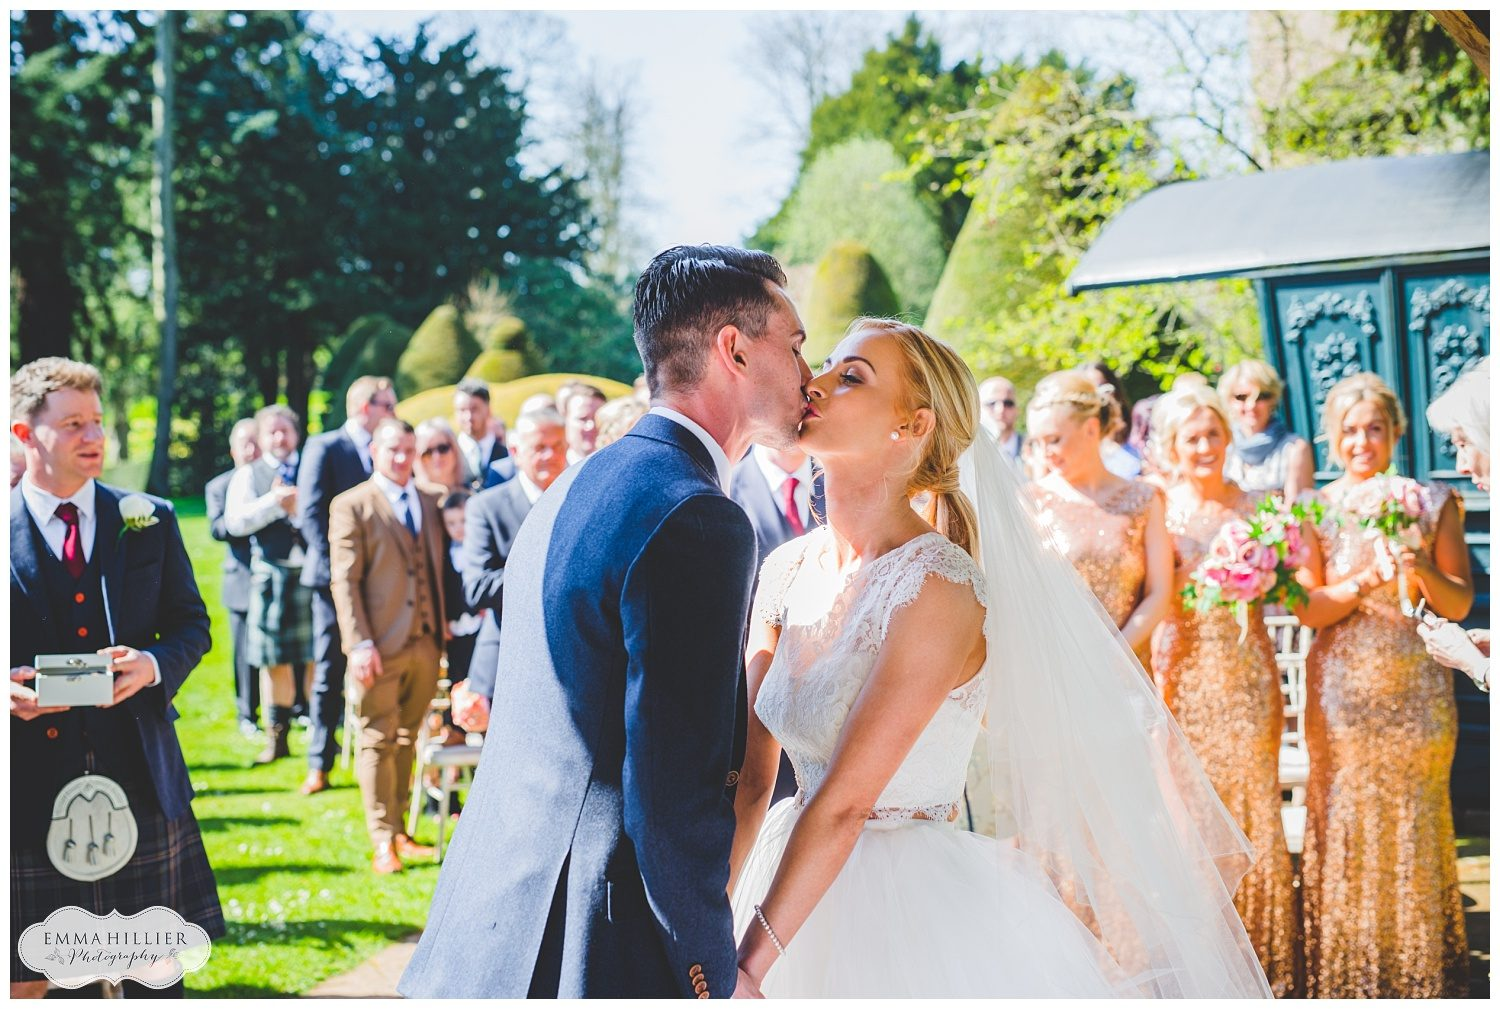 Outdoor wedding ceremony at Askam Hall